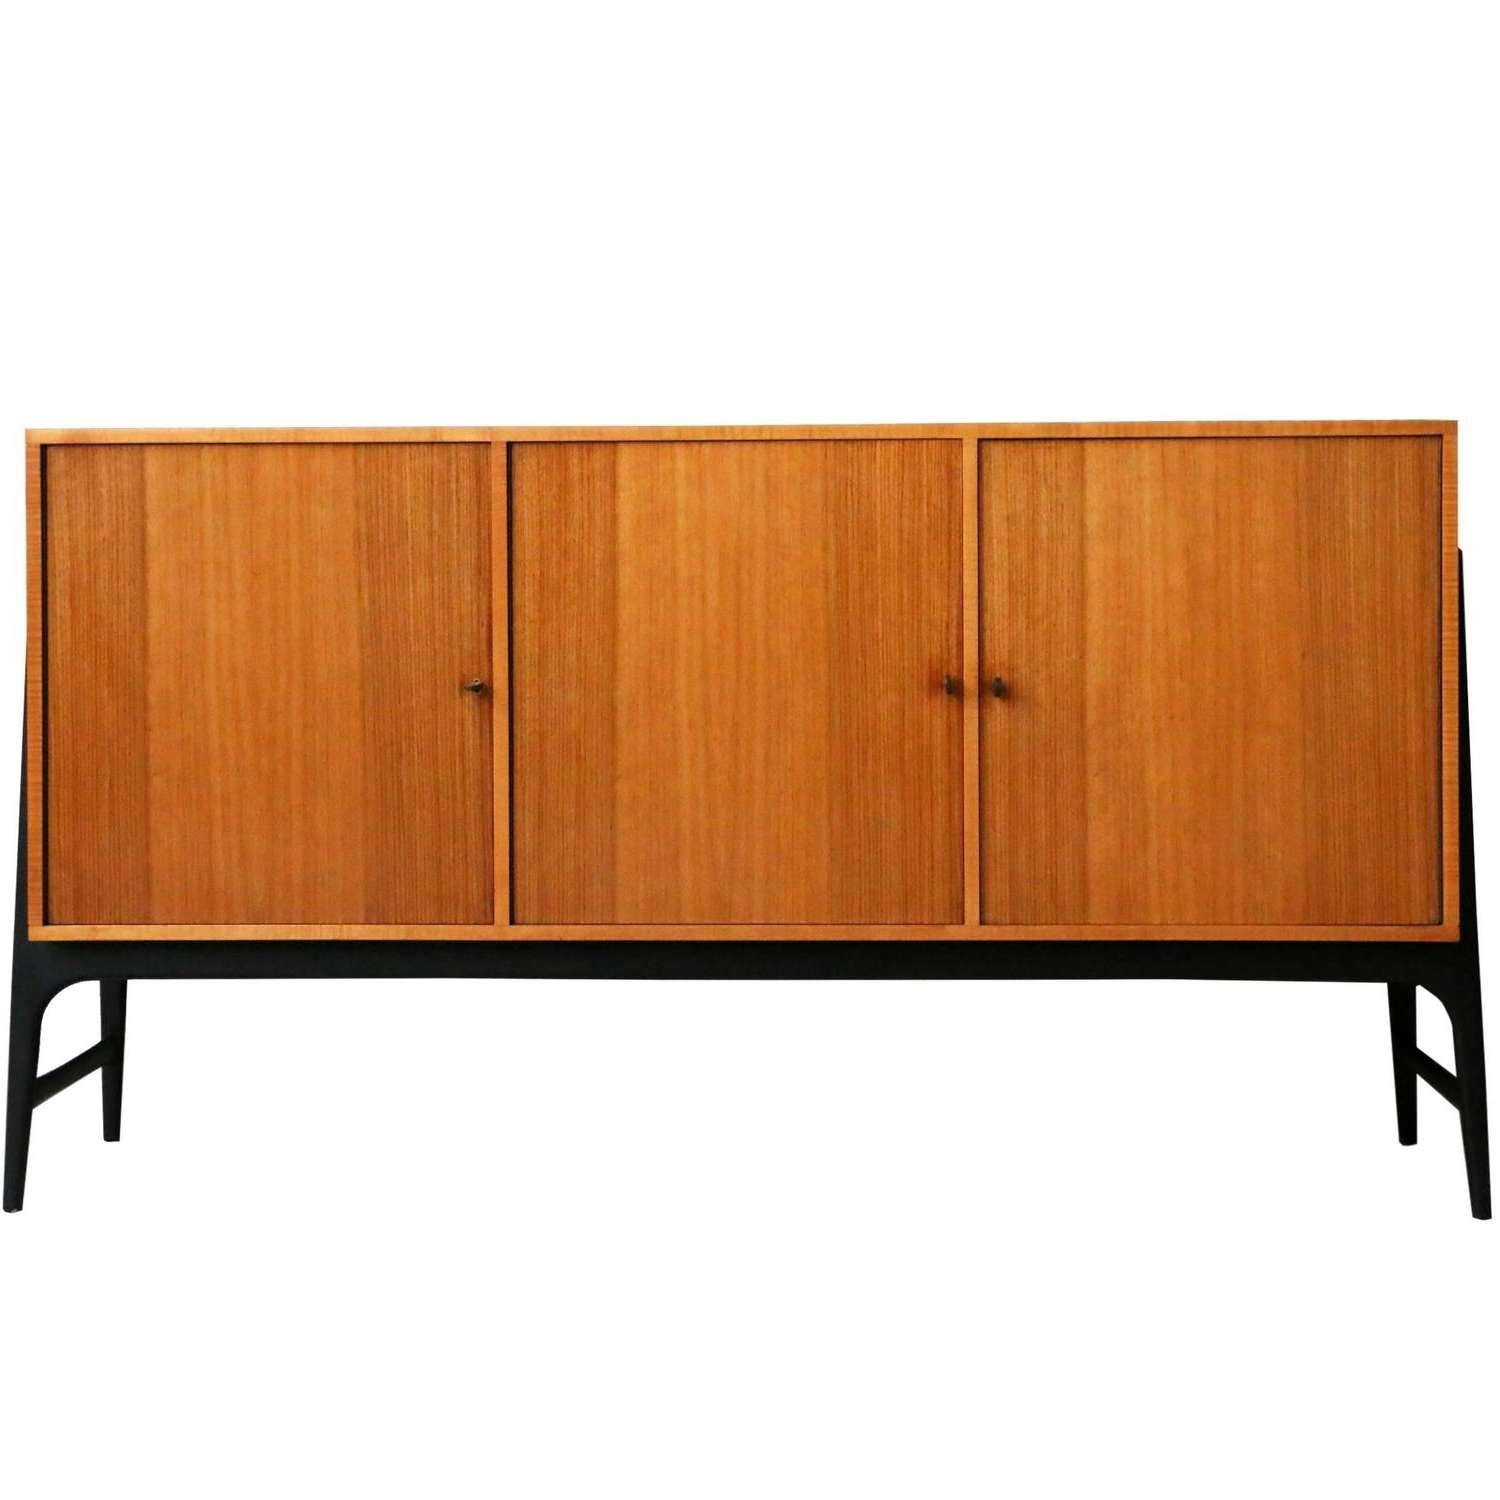 Rare Modernist Sideboardbelgian Architect And Designer Alfred Pertaining To Quirky Sideboards (View 15 of 20)